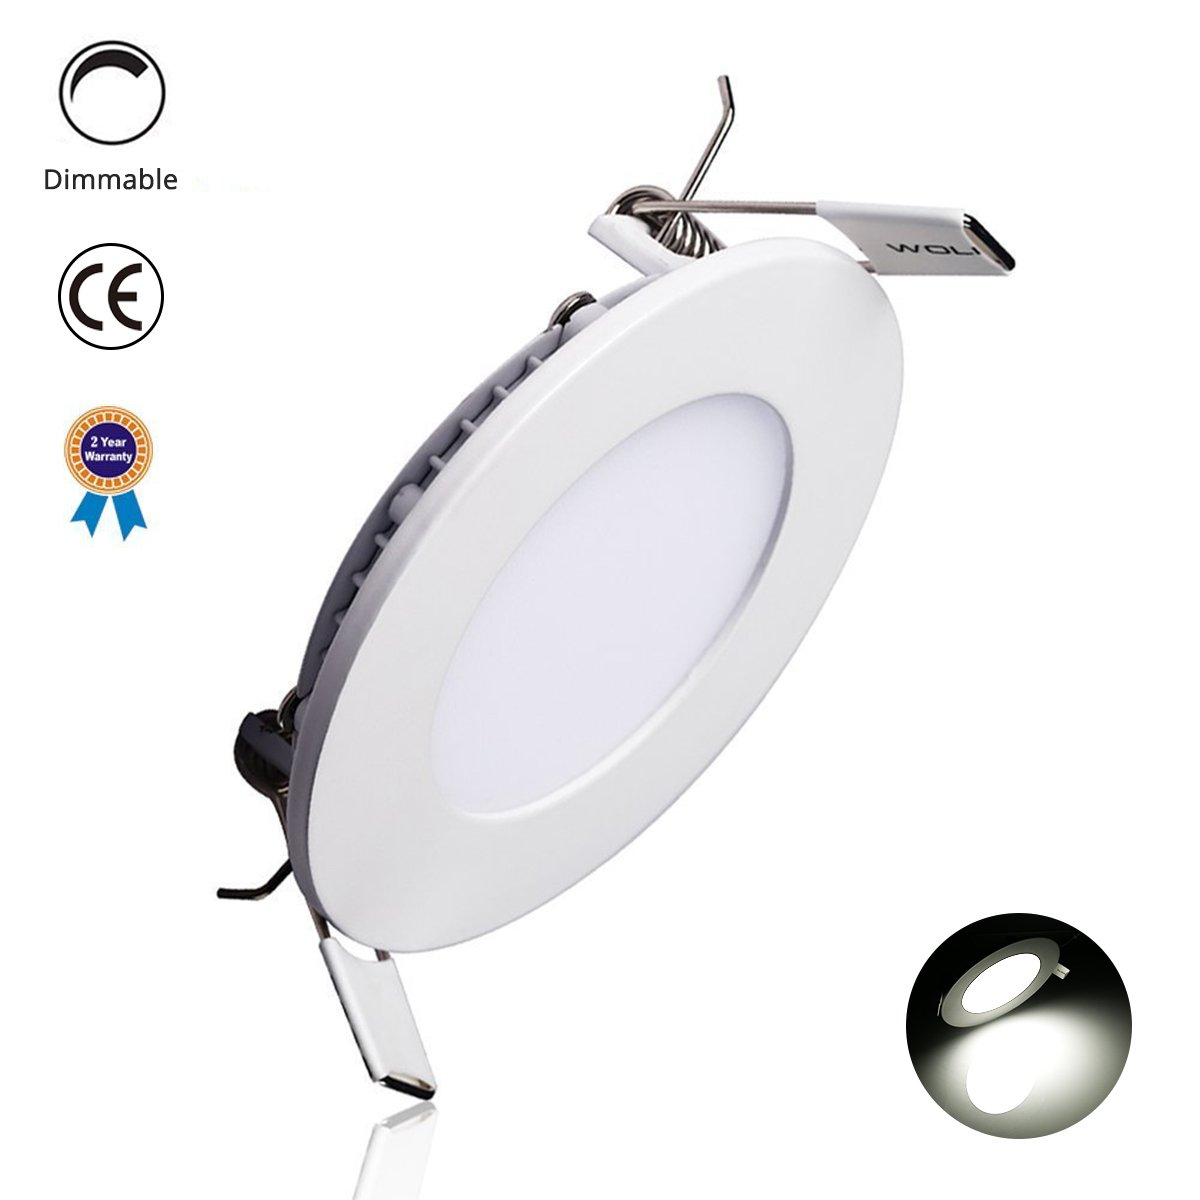 LED Panel Light, 6W 4-inch Dimmable Round Ultra-Thin Downlight with Driver, 40W Incandescent Equivalent, 480lm, Daylight White 5000K, LED Recessed Ceiling Lights for Home, Office, Commercial Lighting